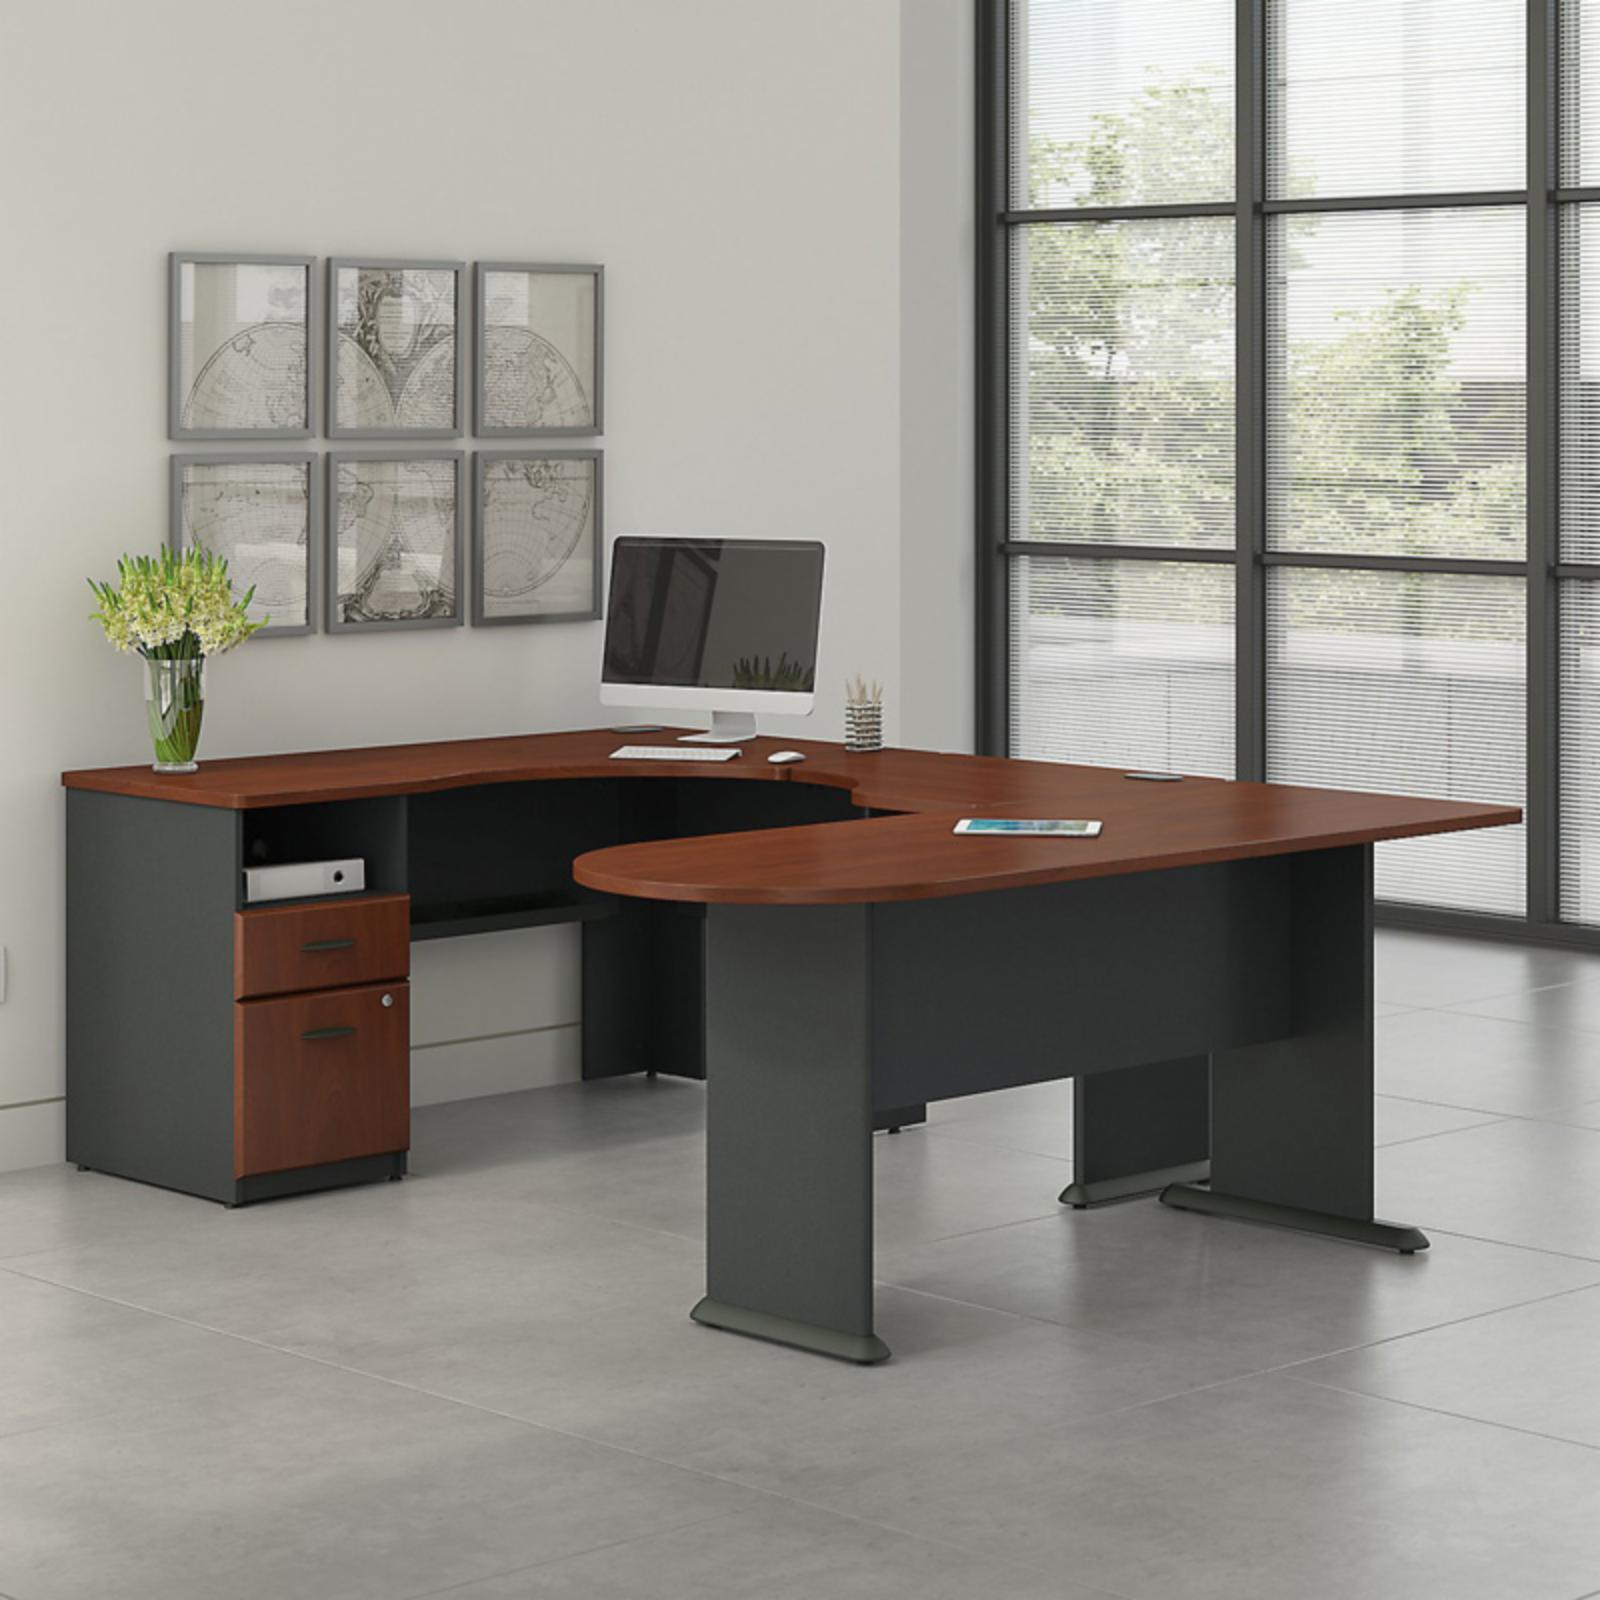 Office Connect Access U Shaped Corner Desk with Pedestal - ACS003HC